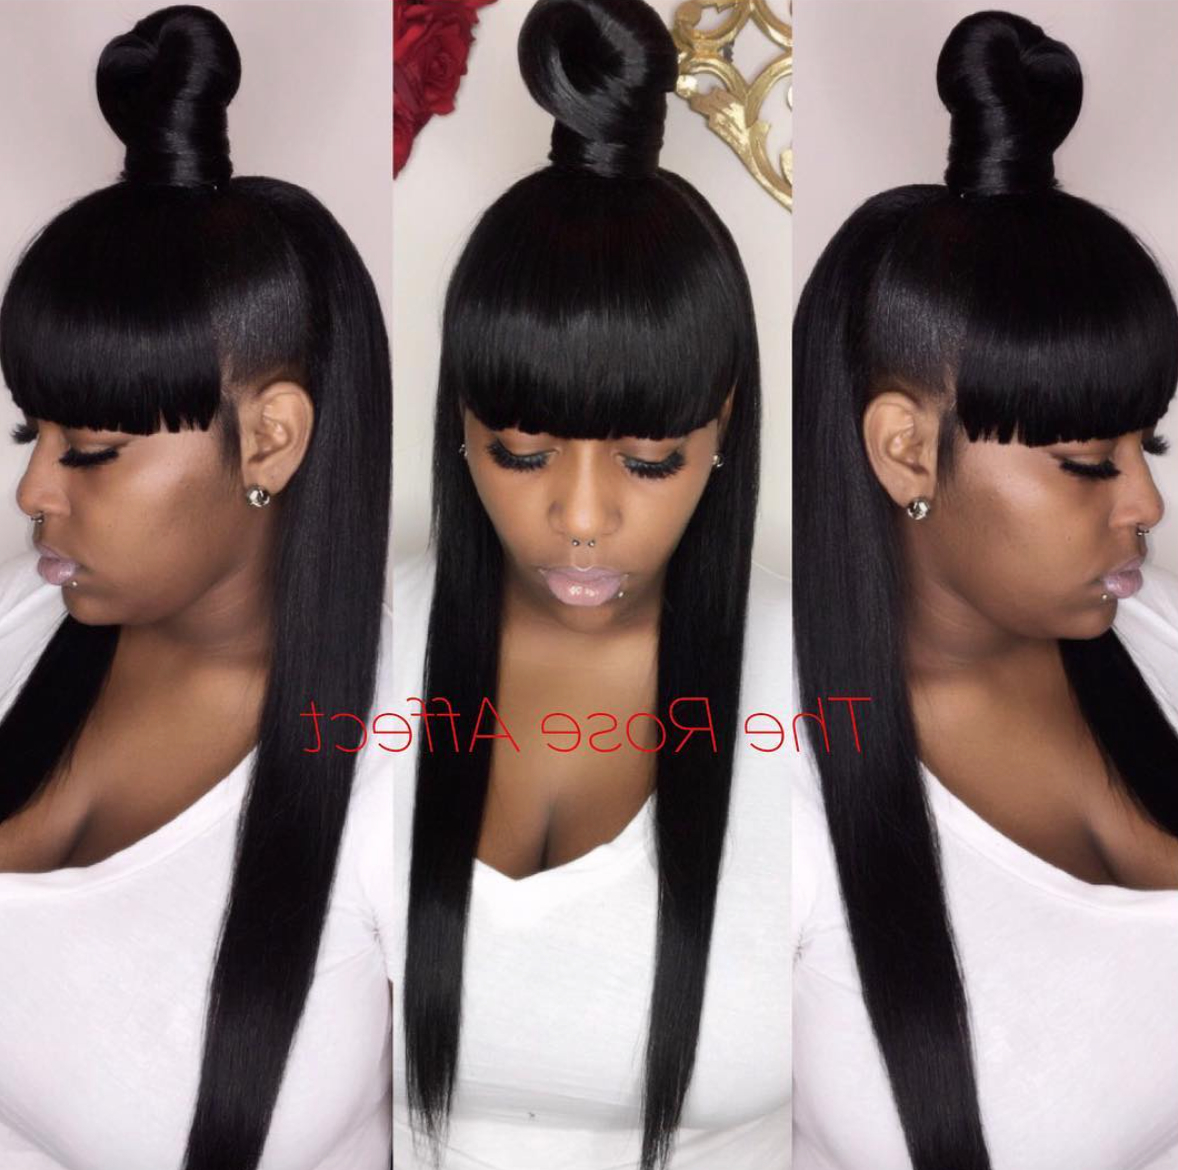 Recent Tight High Ponytail Hairstyles With Fringes Regarding Pindeedra Cooper On Styles In (View 16 of 20)